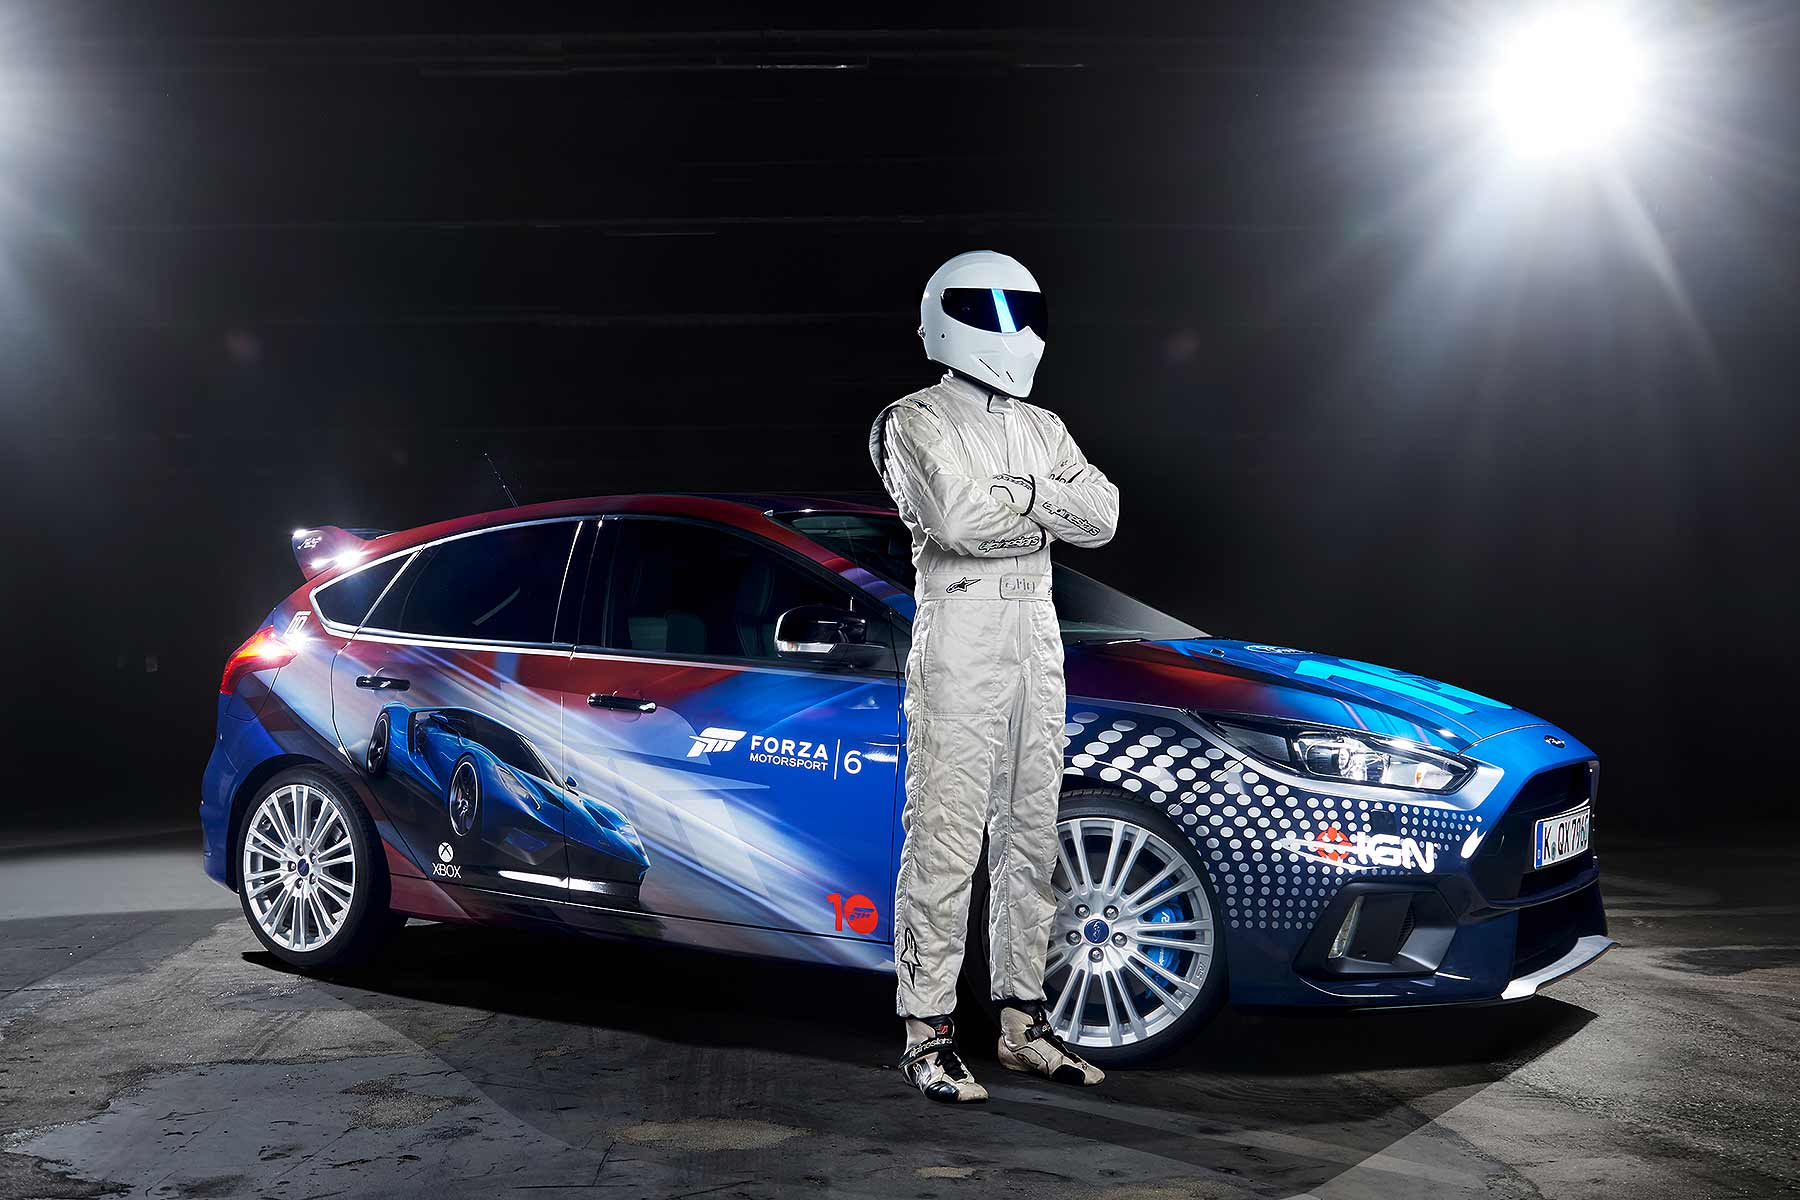 The Stig and the Forza Focus RS